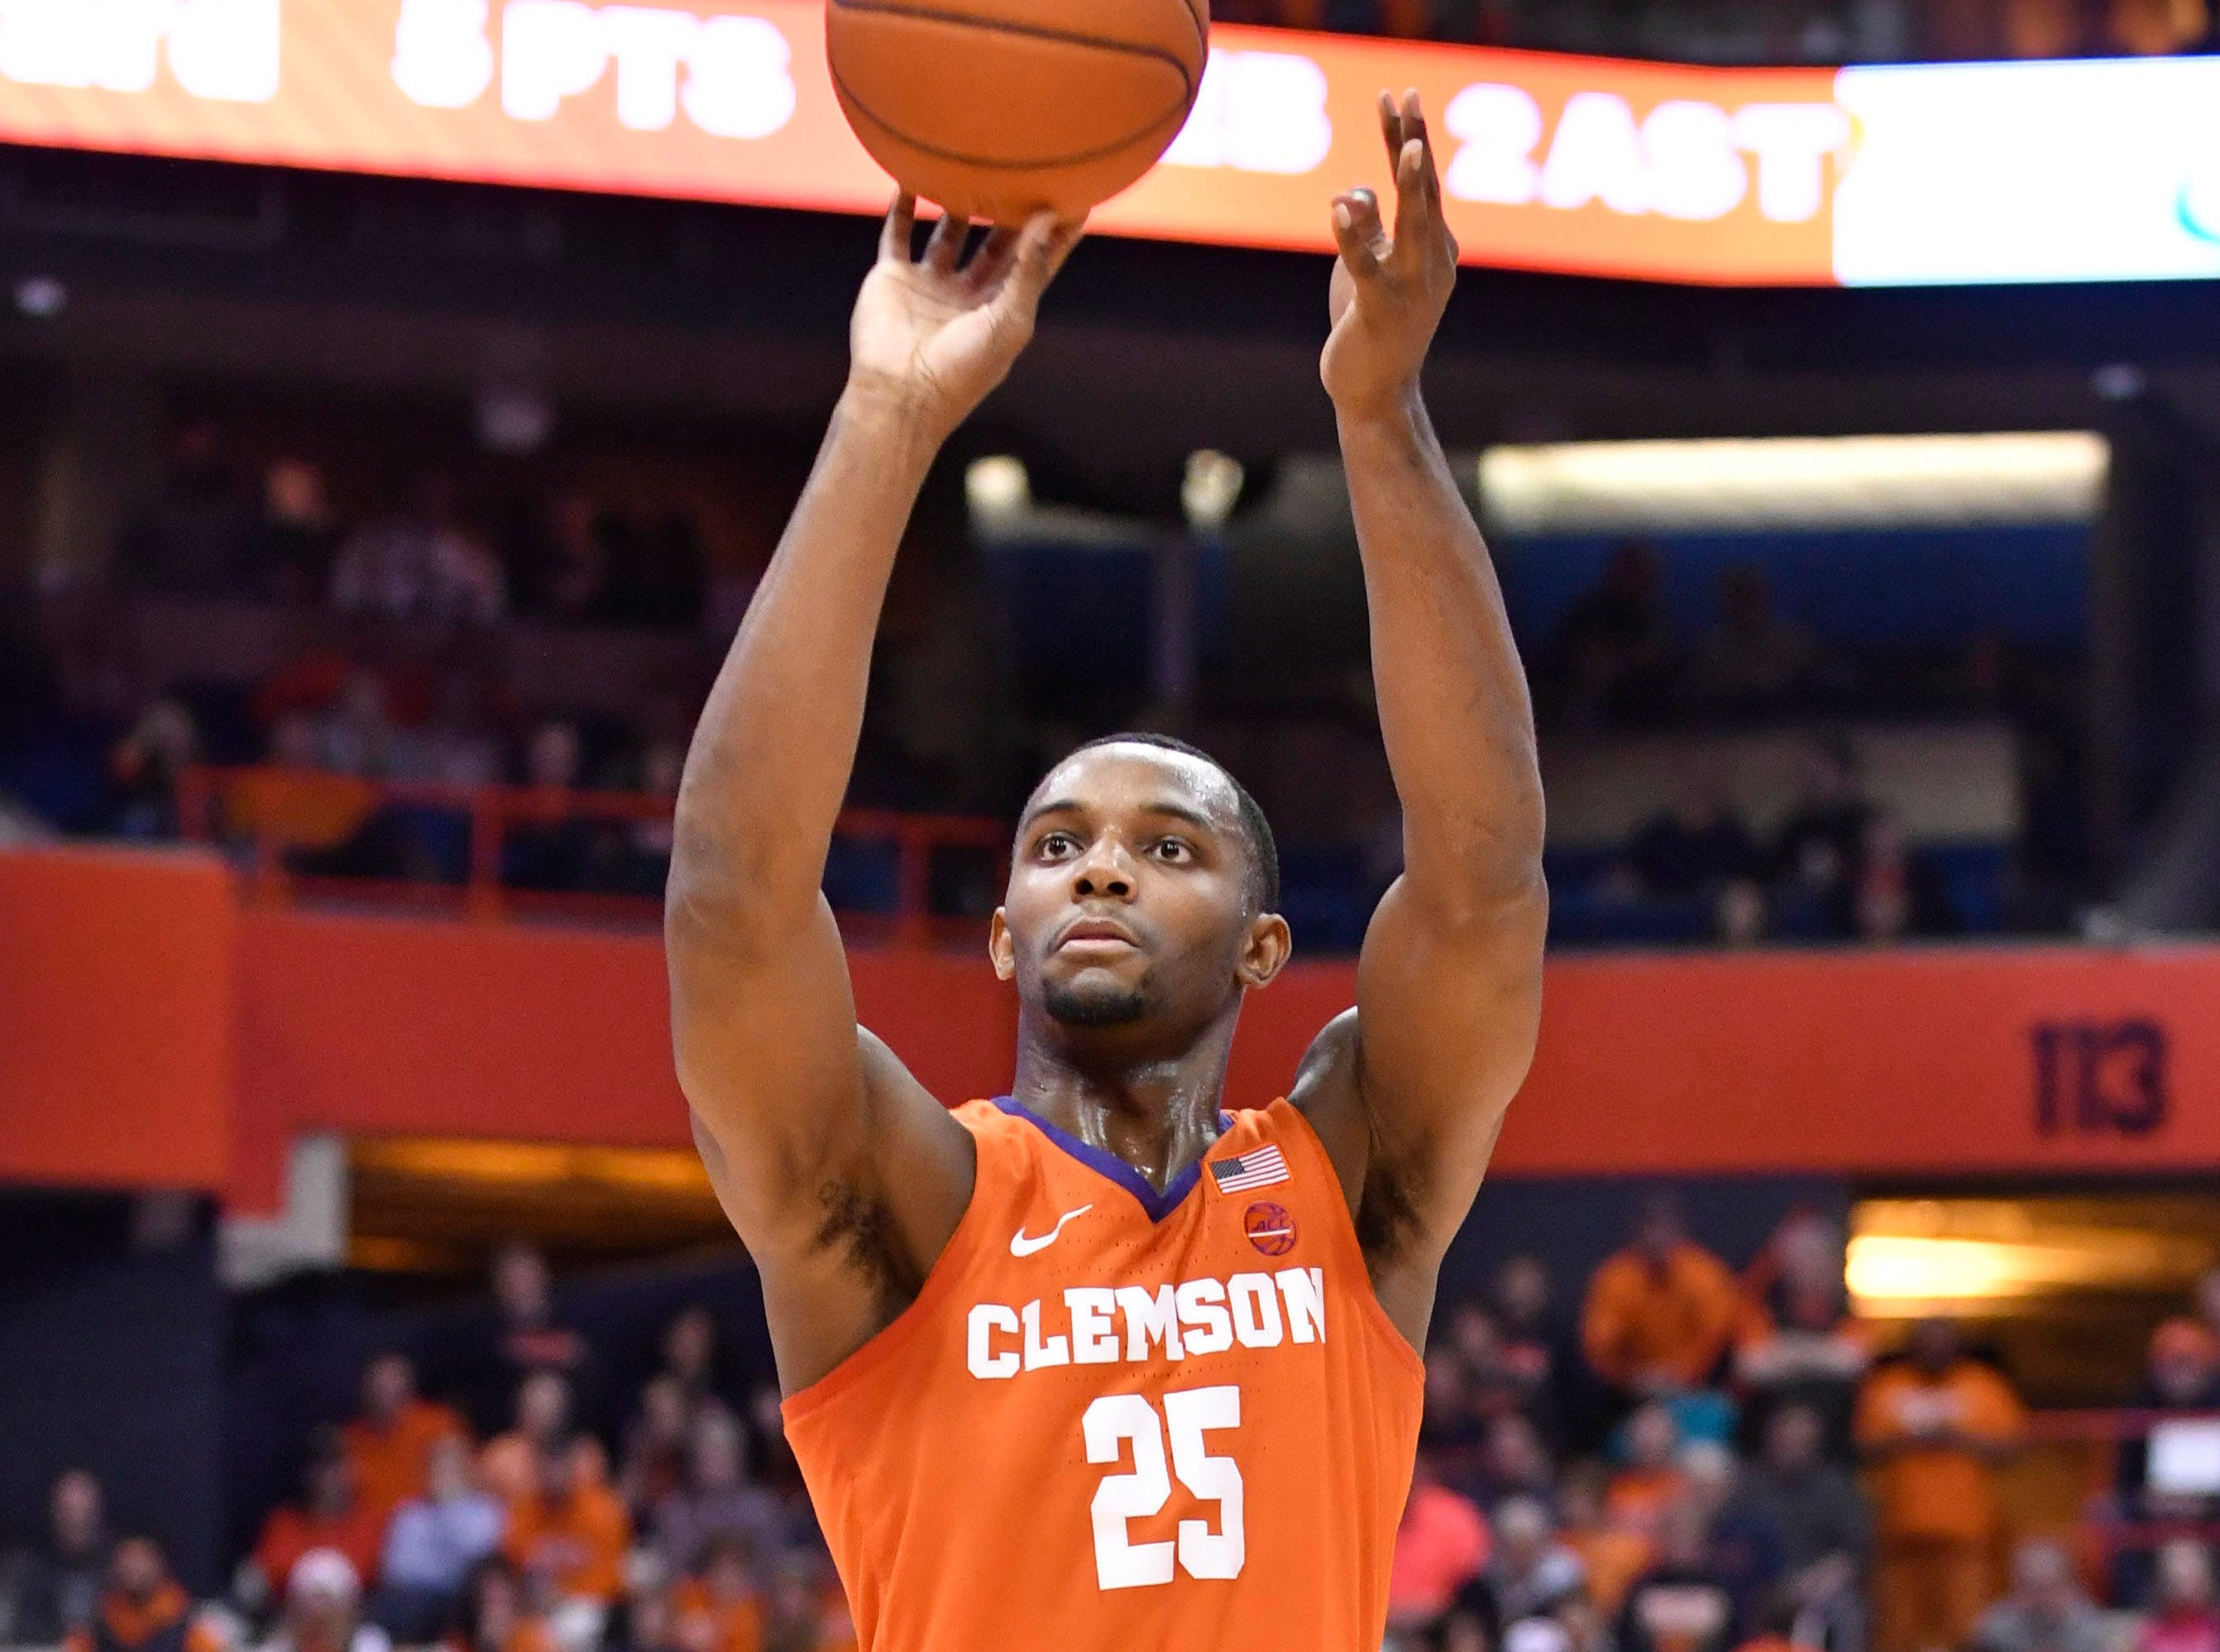 Jan 9, 2019; Syracuse, NY, USA; Clemson Tigers forward Aamir Simms (25) takes a jump shot during the first half against the Syracuse Orange at the Carrier Dome.